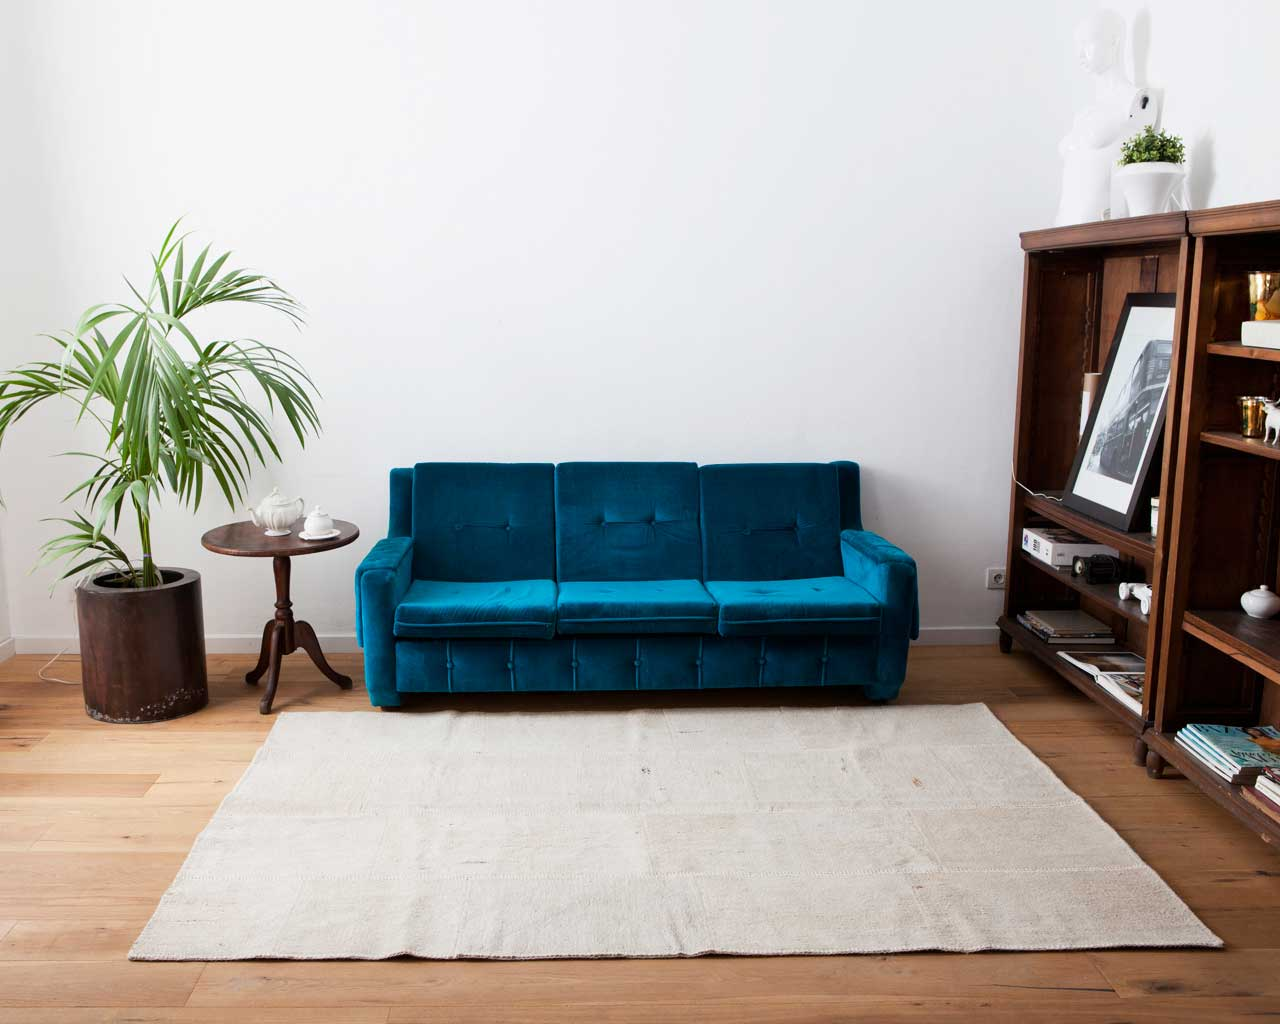 couch design apartment hemp rugs